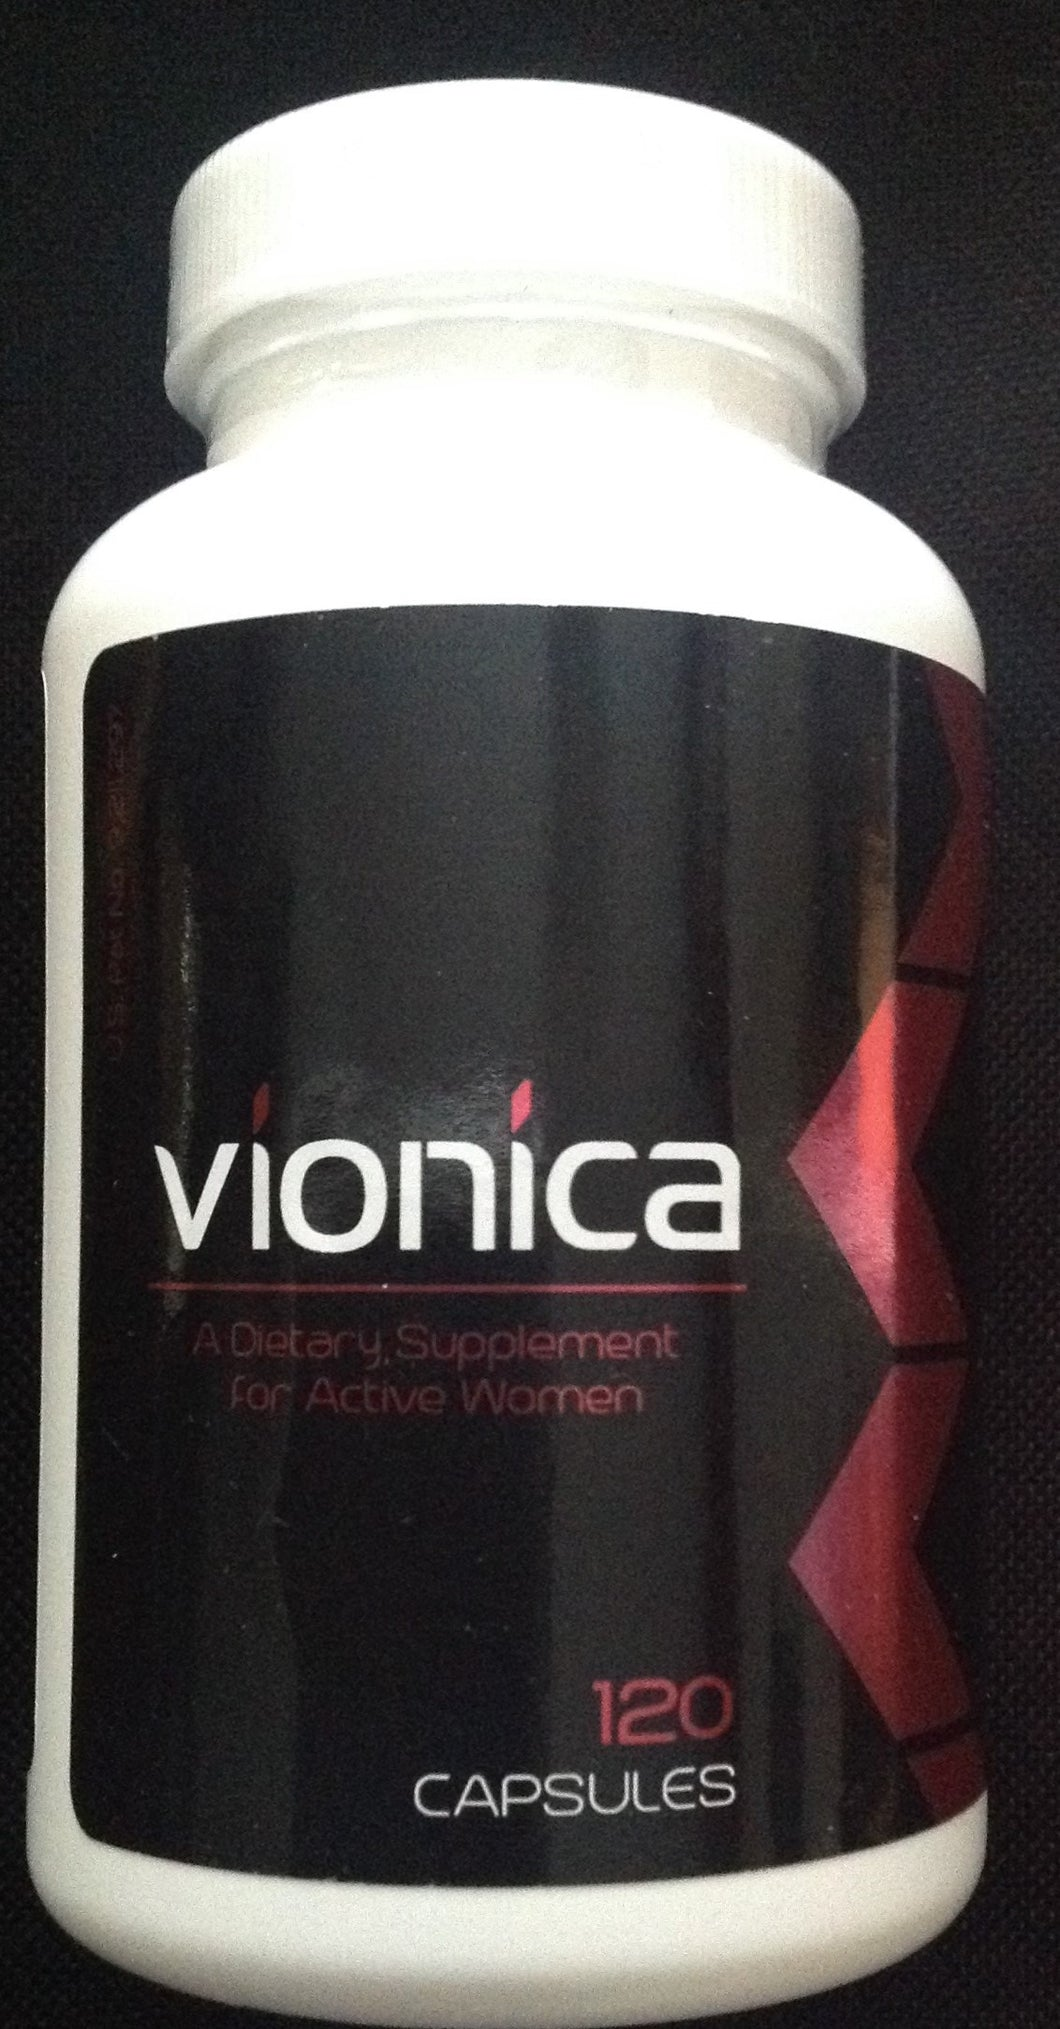 Vionica - 1 month supply (120 capsules). Currently out of stock (see below)